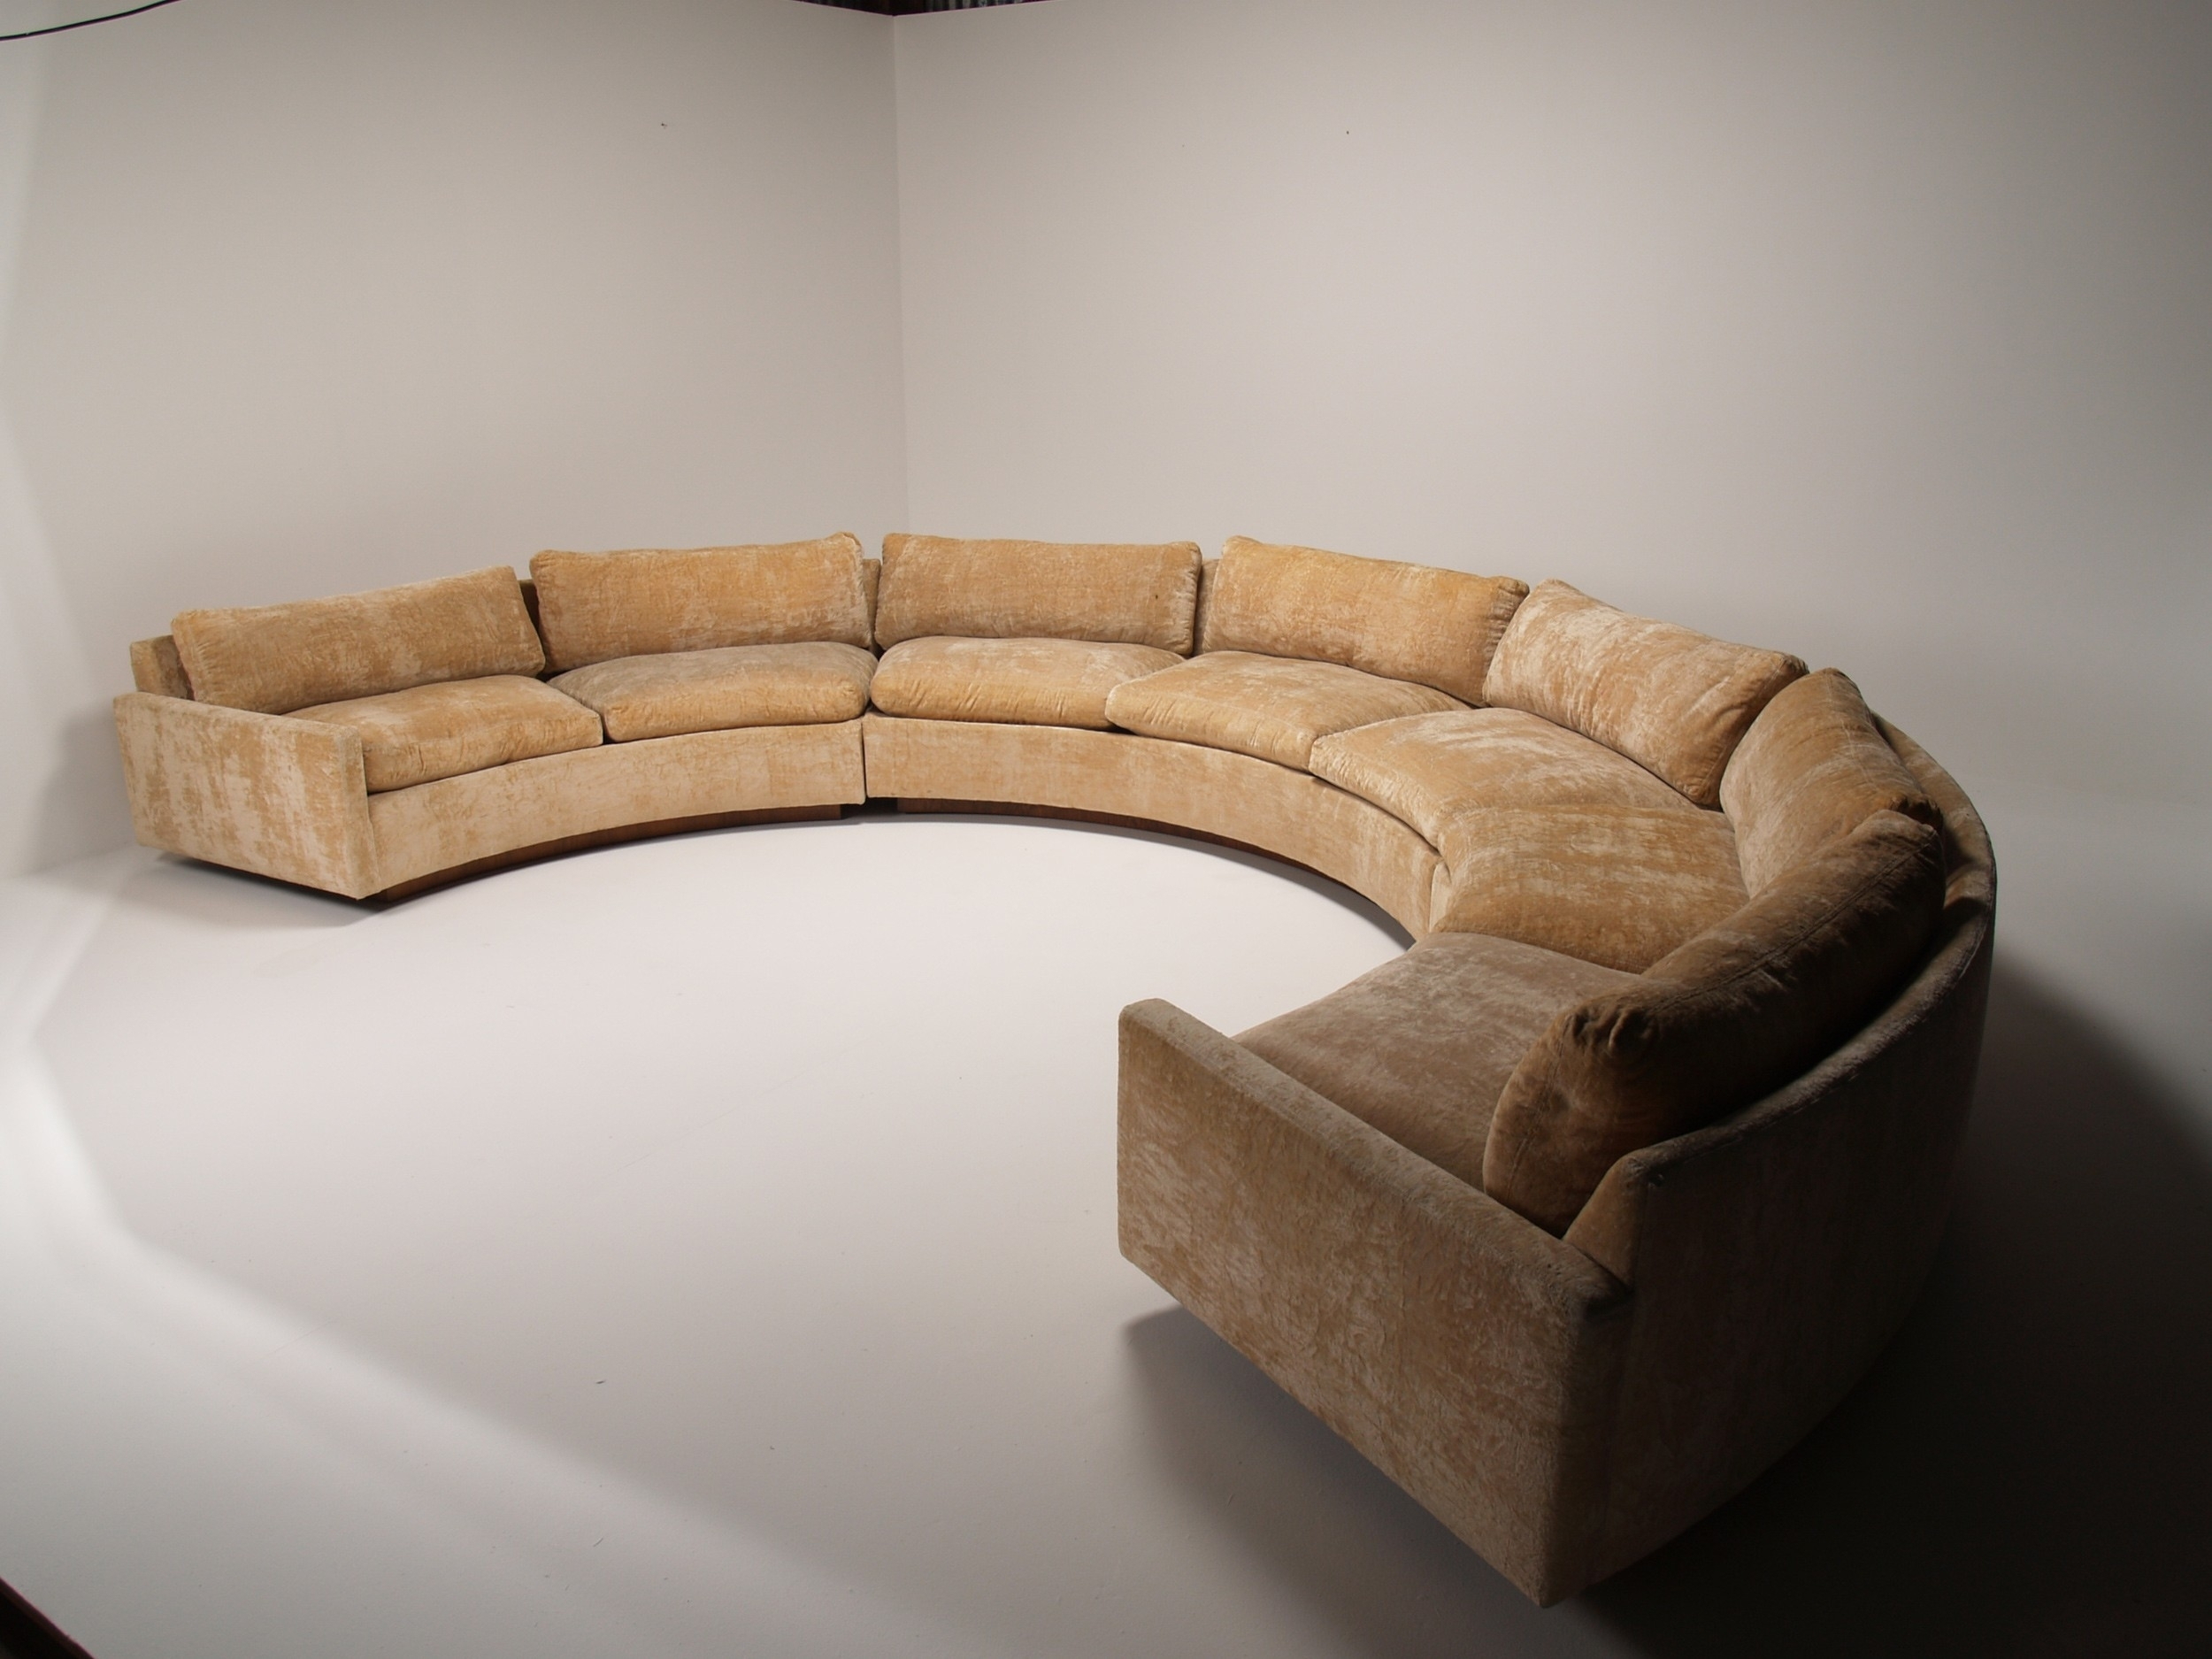 Fascinating Semi Circular Sofas Sectionals 55 On Convertible Within Semicircular Sofas (View 3 of 10)